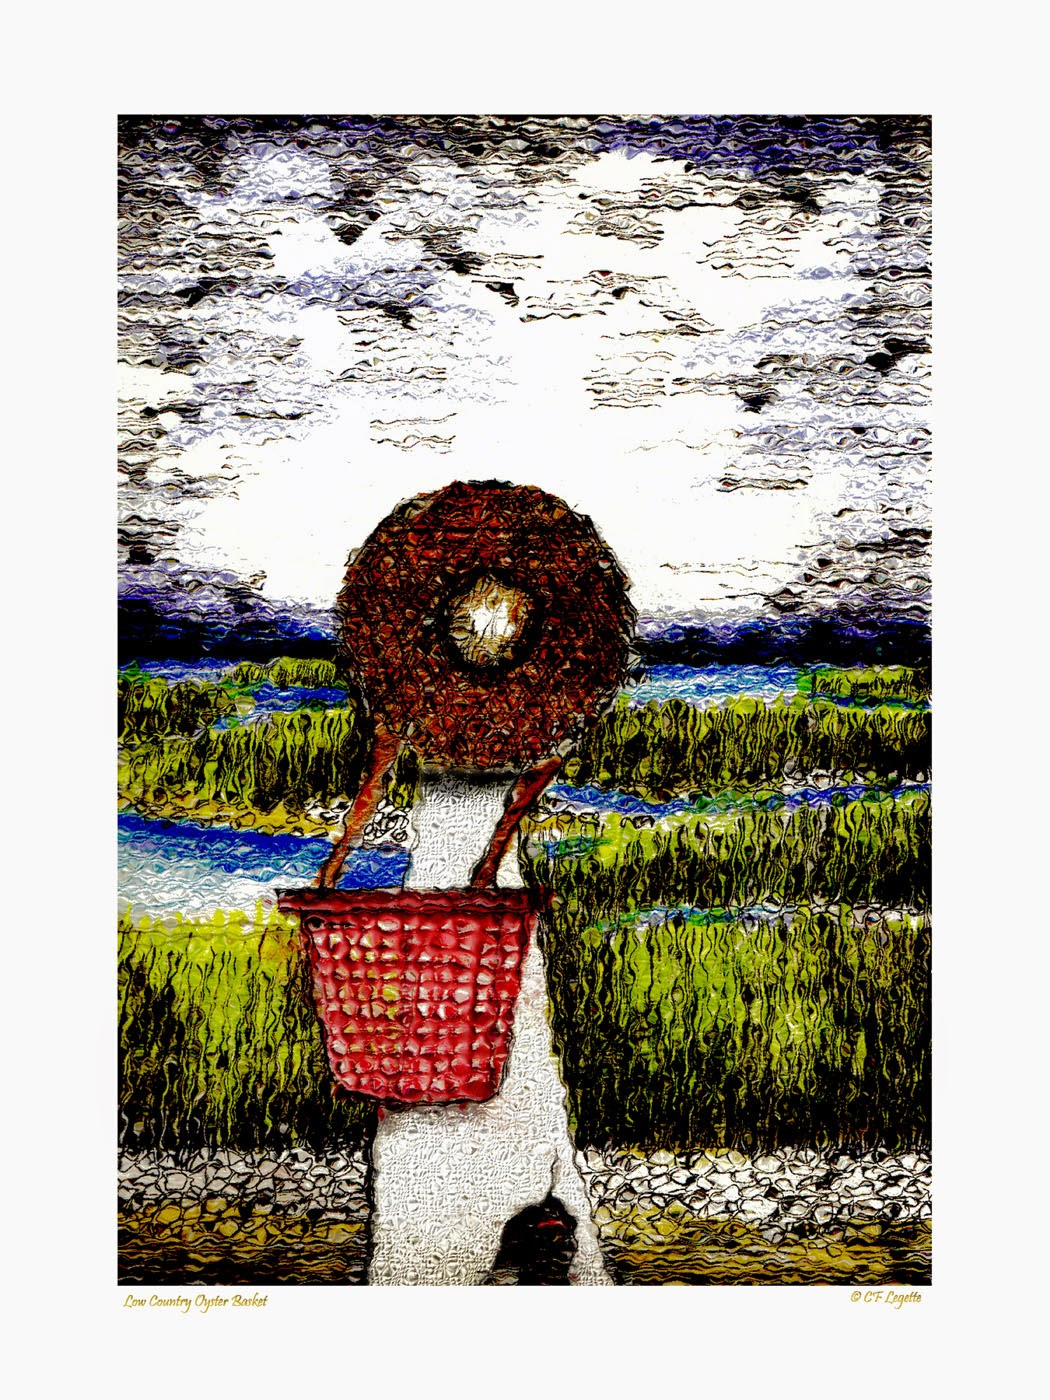 http://fineartamerica.com/featured/low-country-oyster-basket-c-f-legette.html?newartwork=true